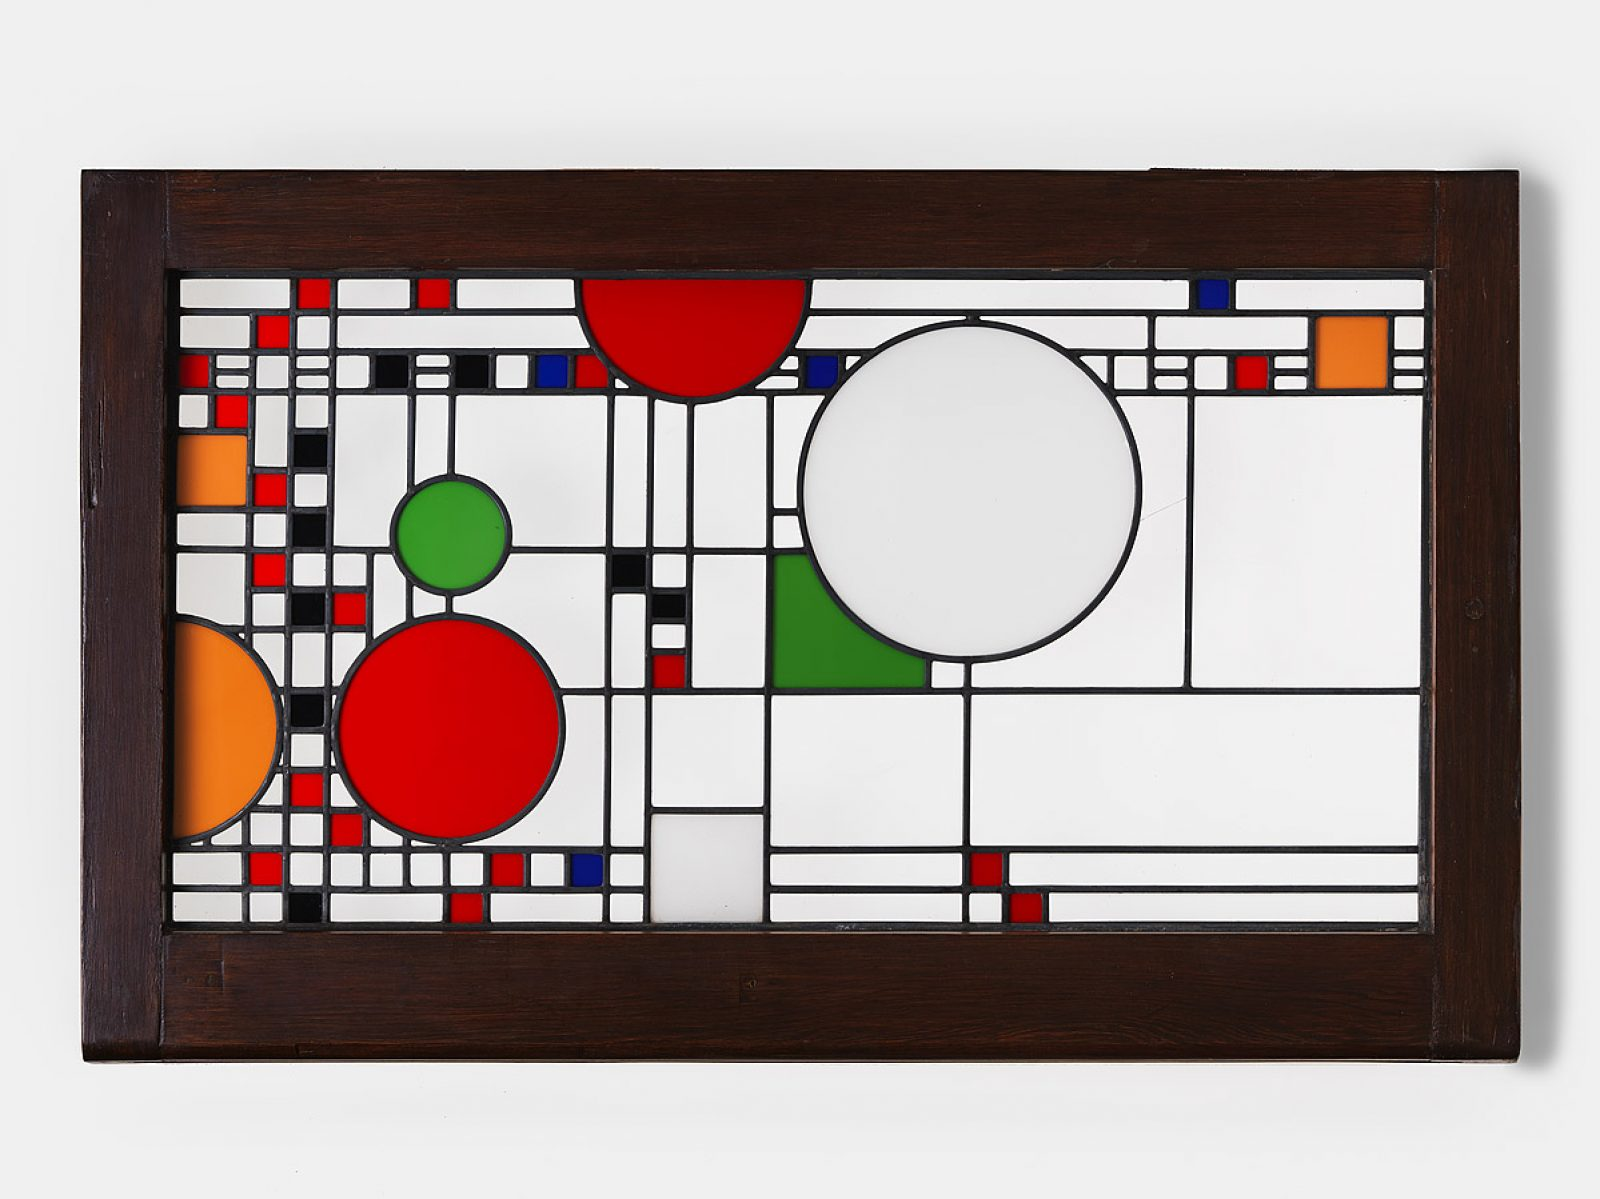 Frank Lloyd Wright Window from the Avery Coonley Playhouse 1912